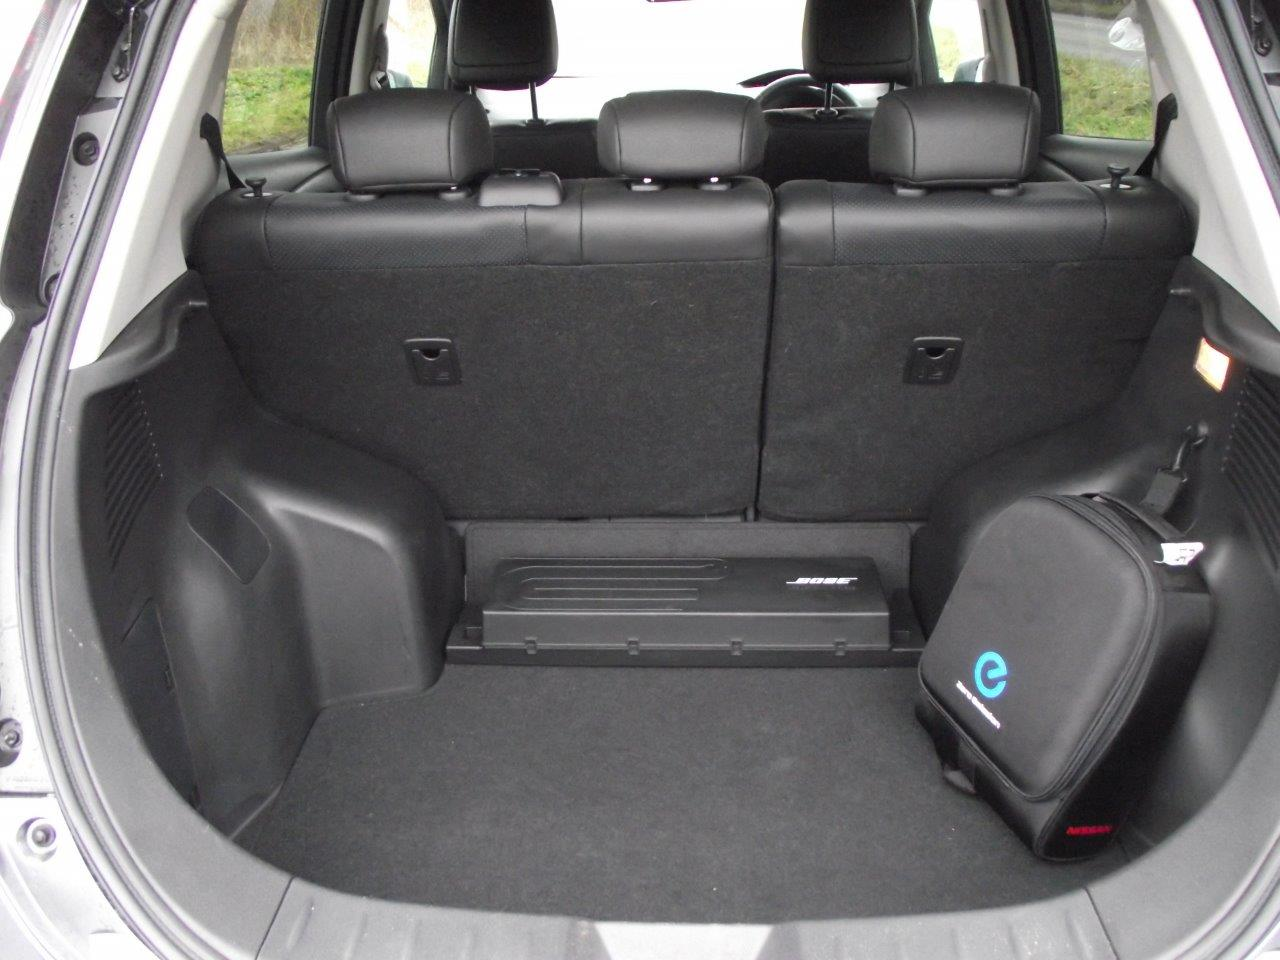 Boot size for a nissan leaf